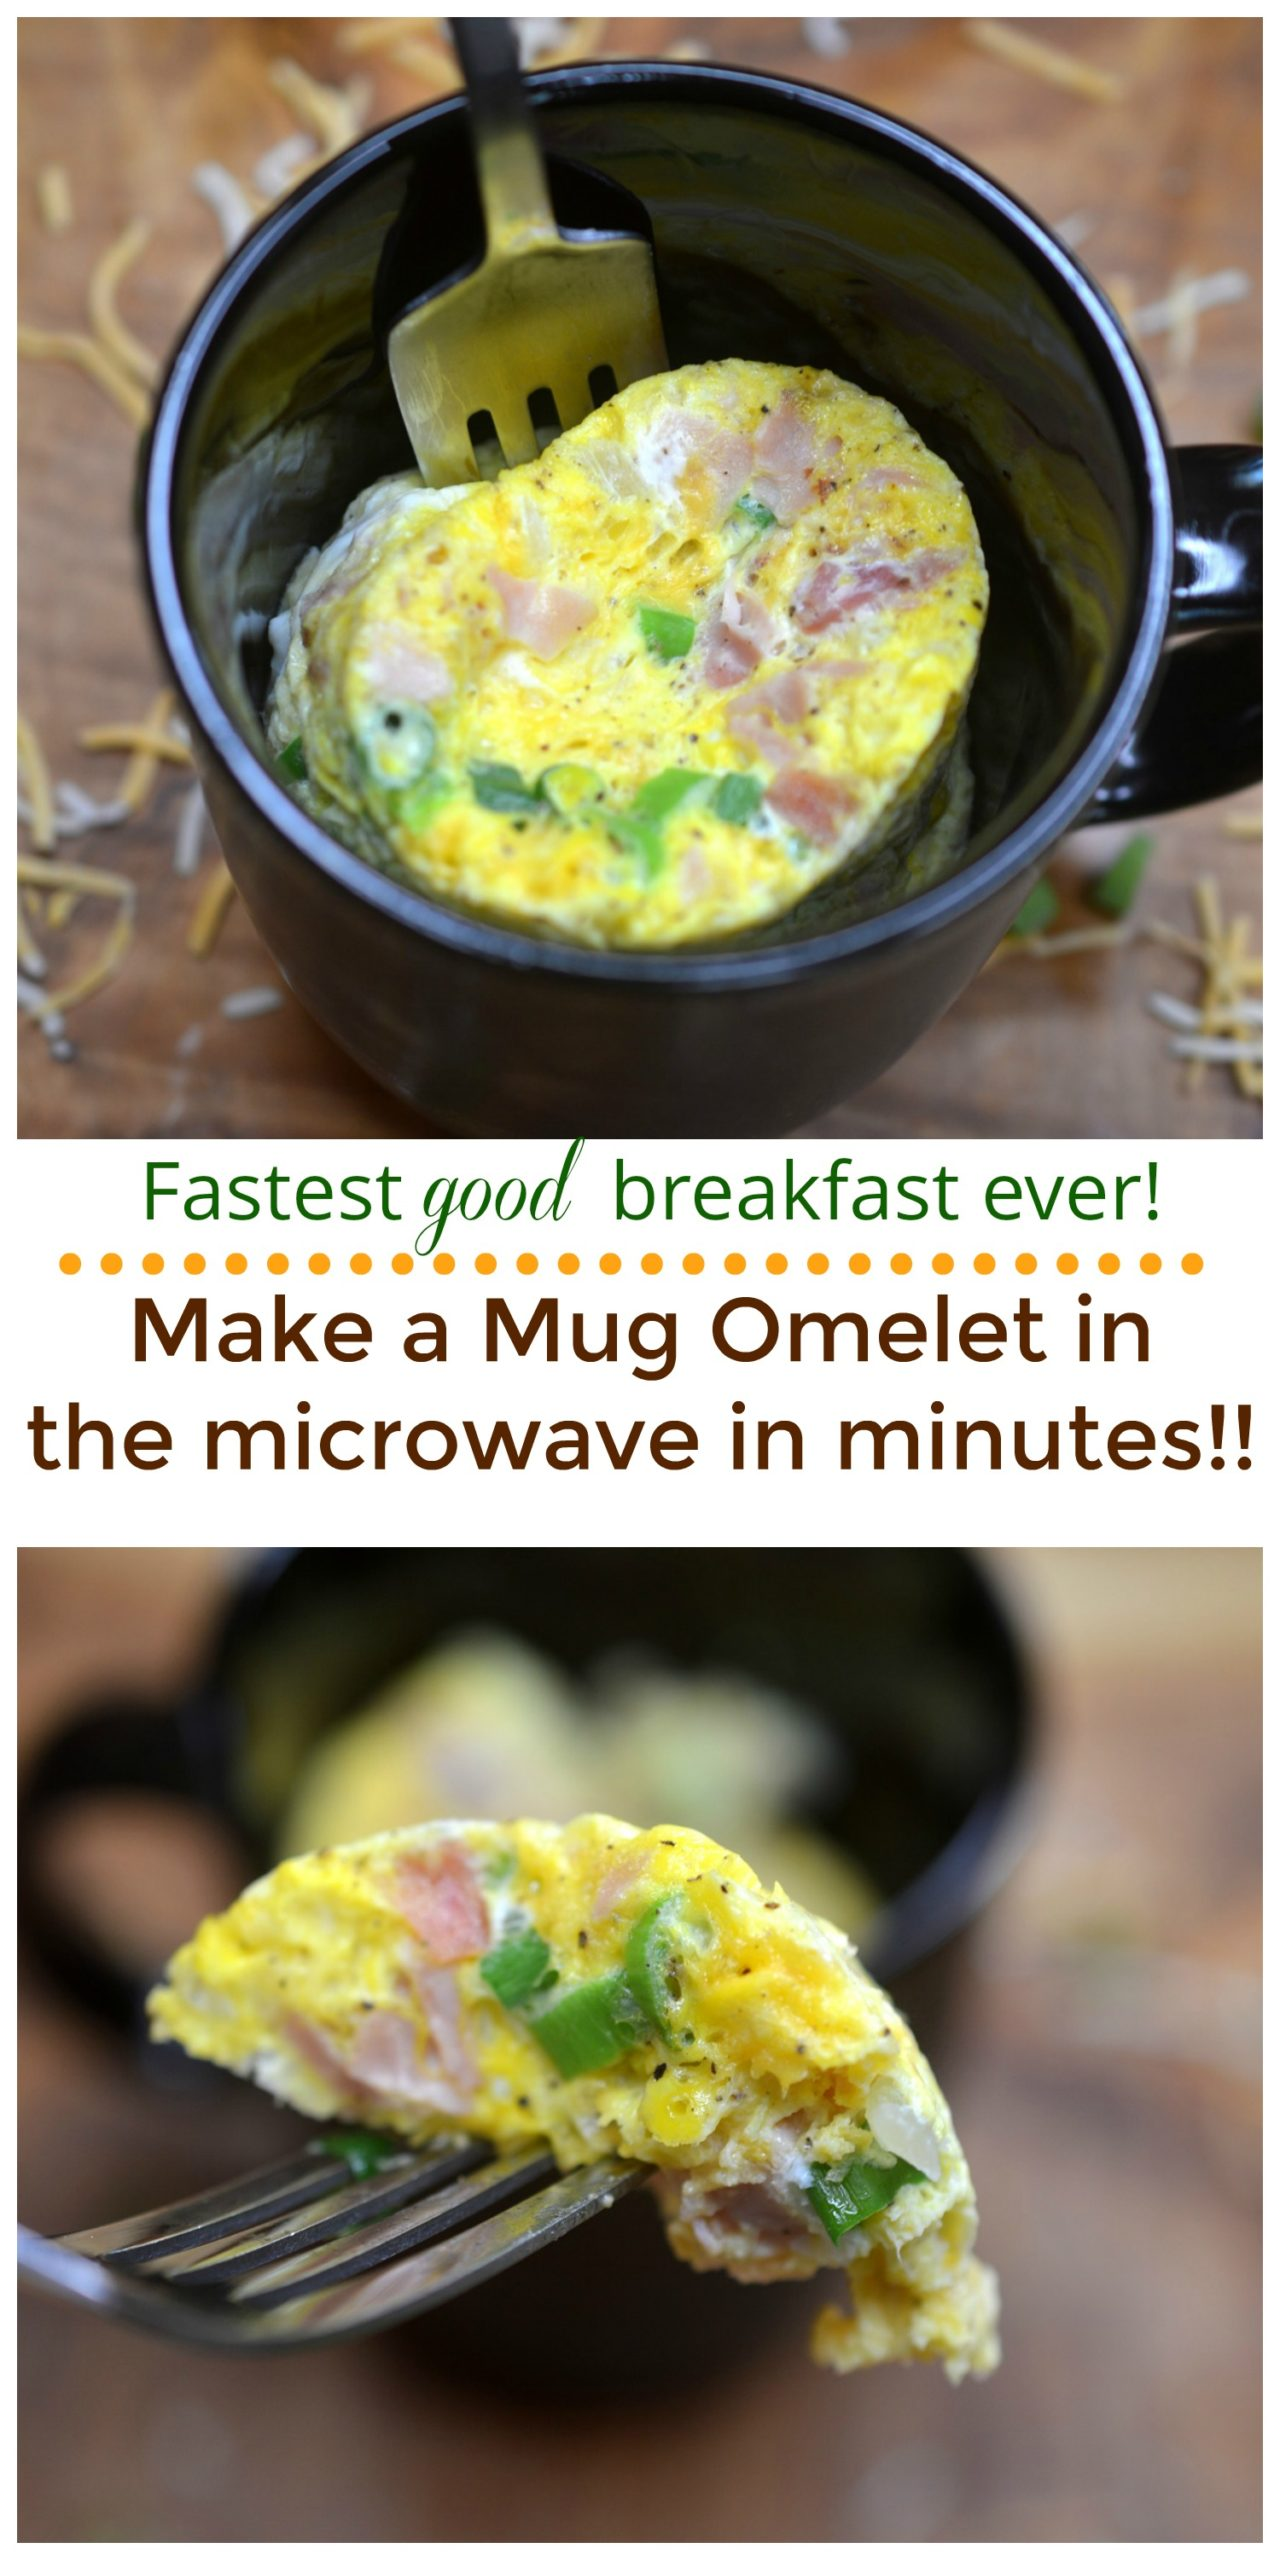 Delicious 5 Minute Microwave Omelet